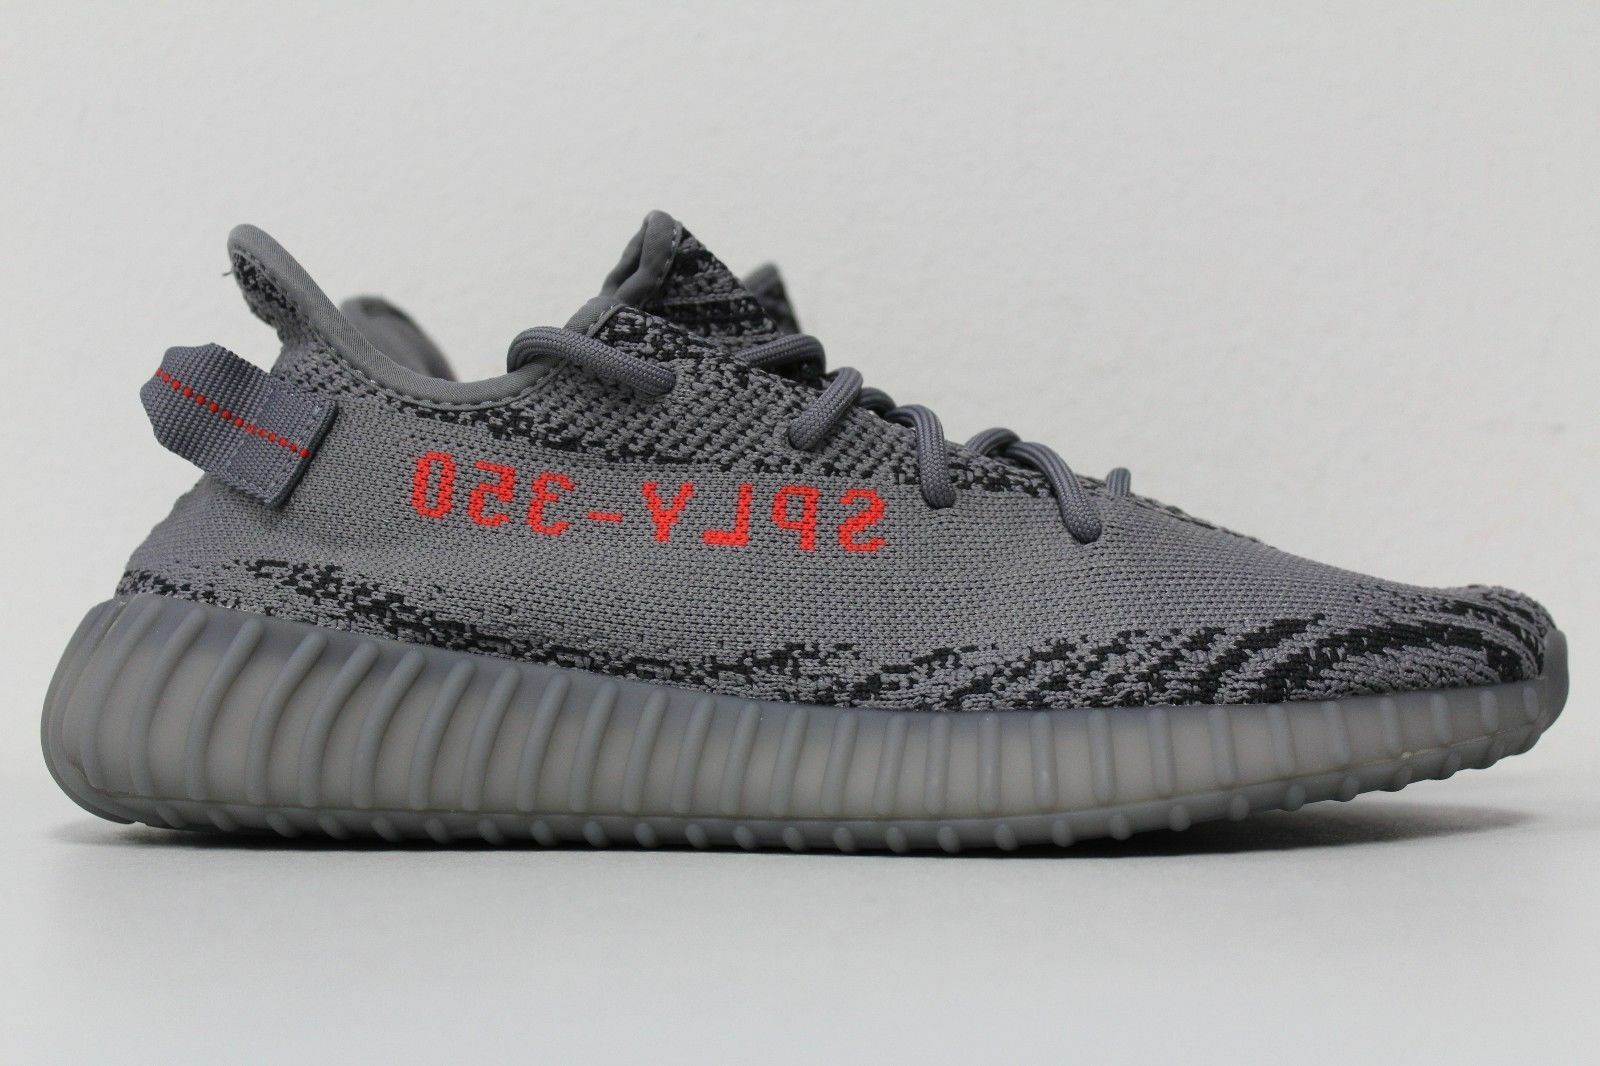 adc1b1f7a adidas Yeezy Boost 350 V2 Size 10.5 100 Authentic With Receipt for ...